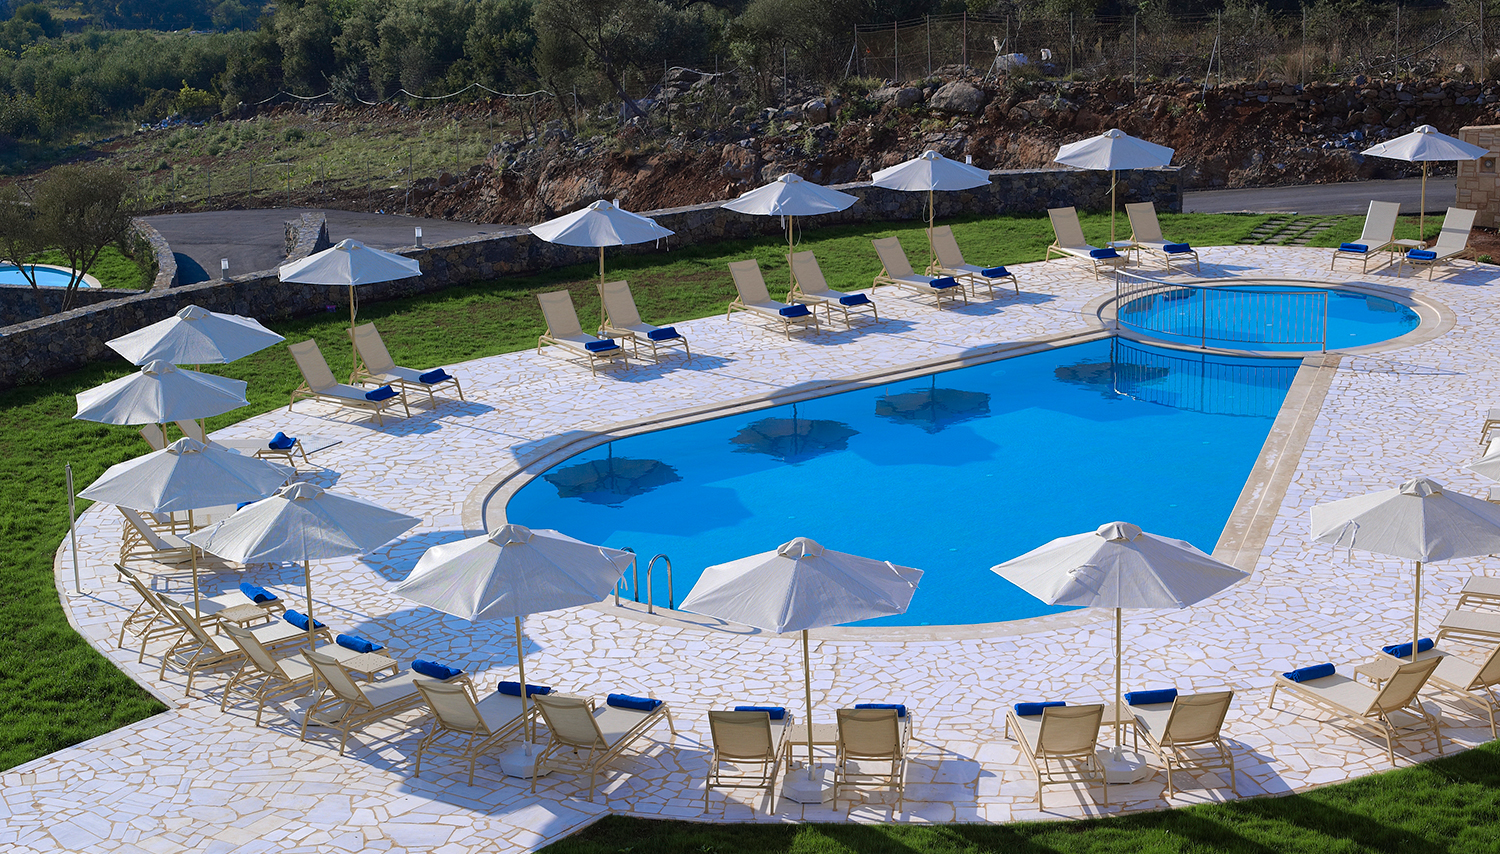 Filion Suites Resort & Spa hotell (Heraklion, Kreeka)